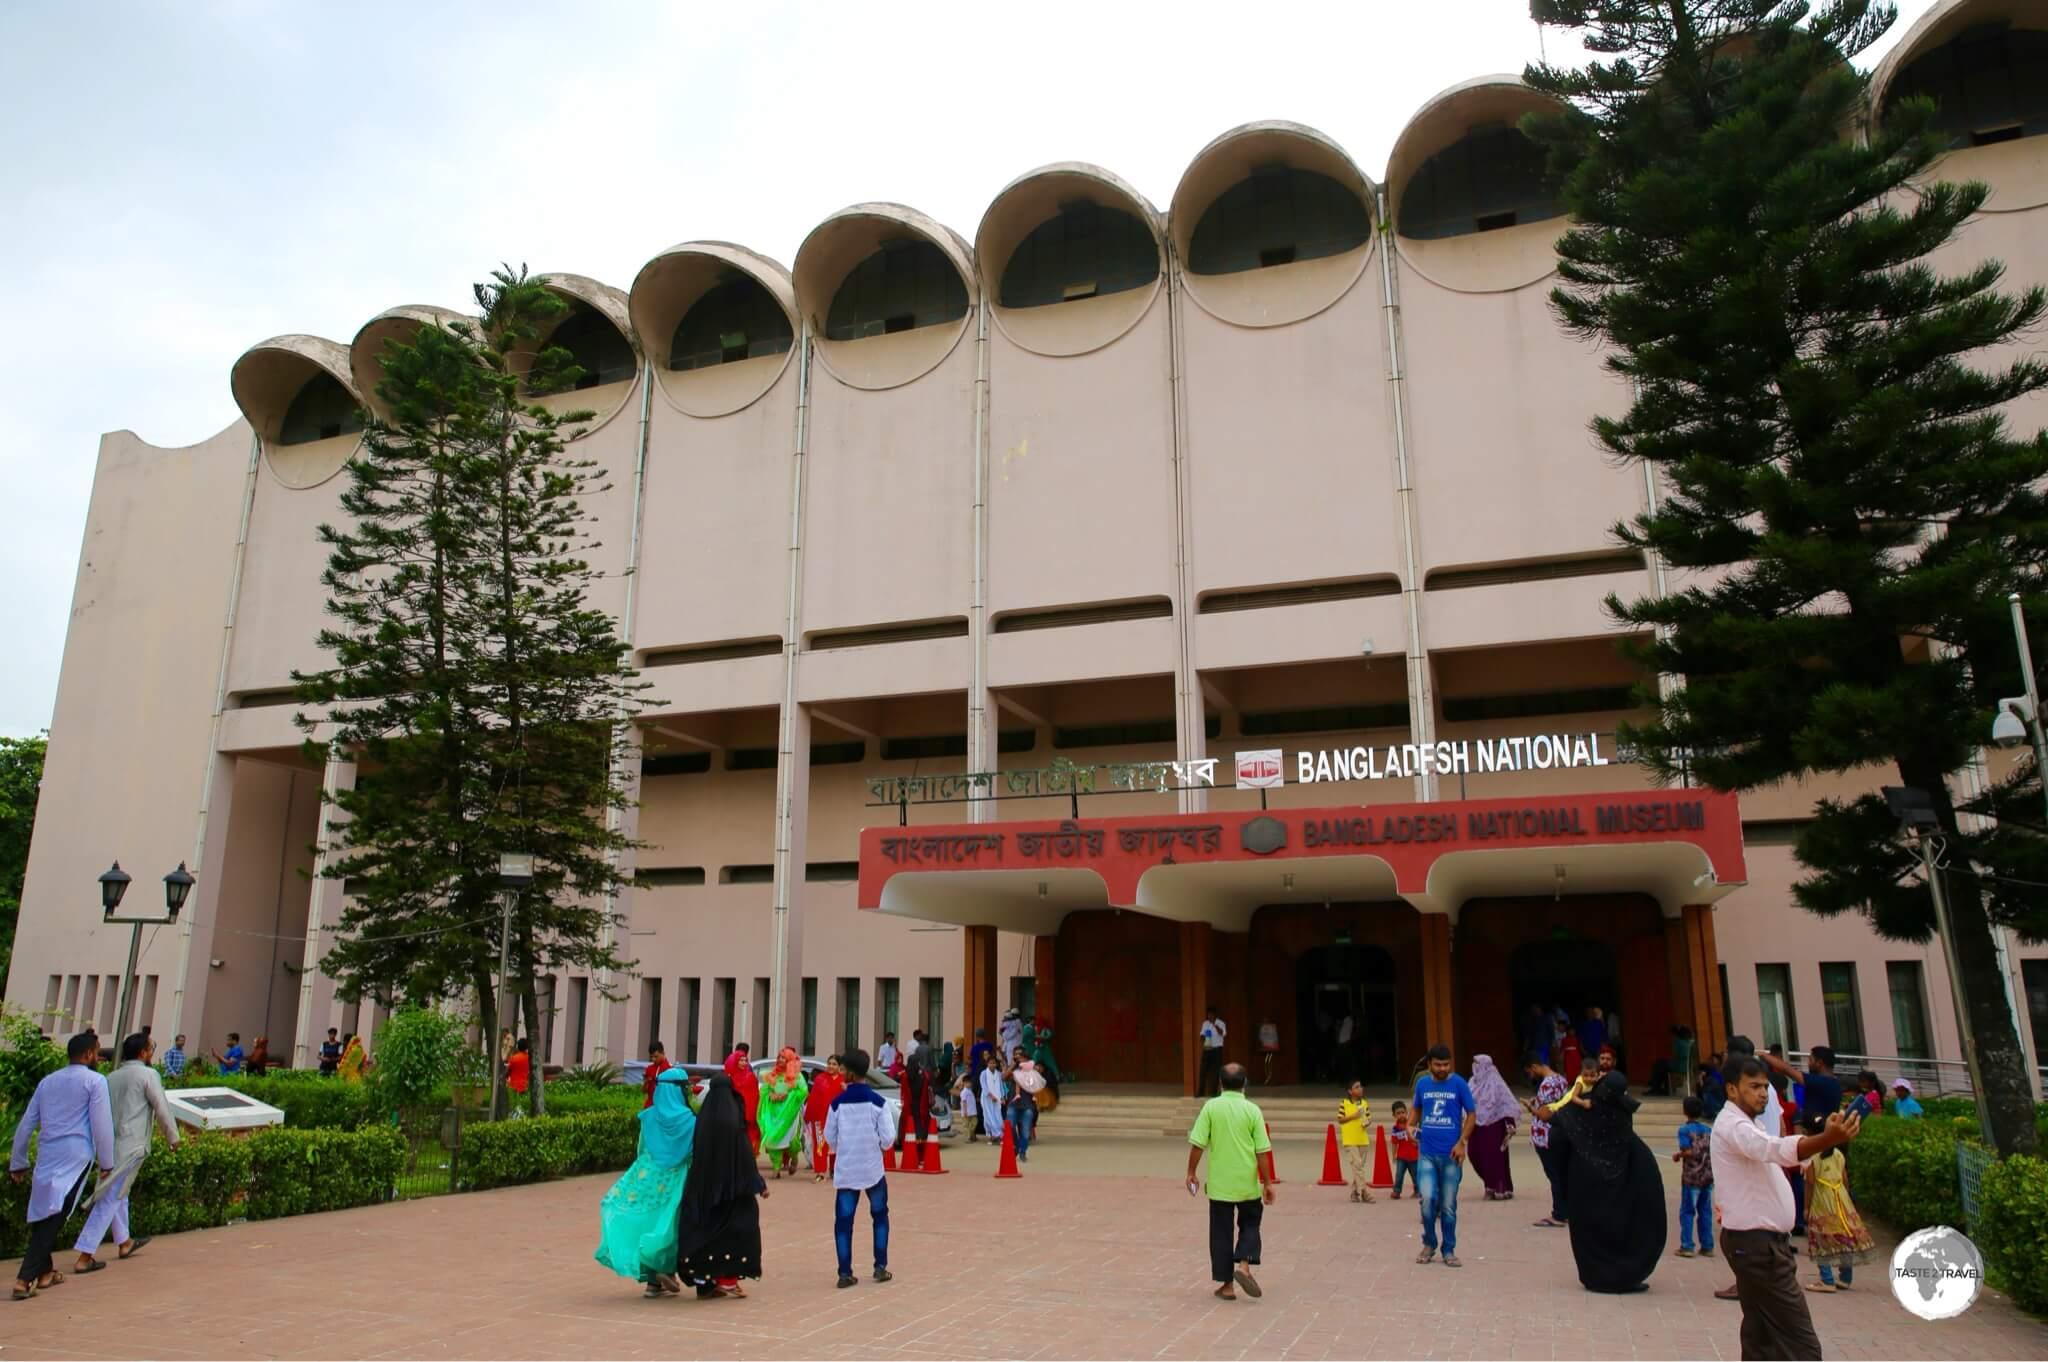 Constructed in 1982, the comprehensive Bangladesh National Museum was designed by Syed Mainul Hossain, a famous Bangladeshi engineer and architect.